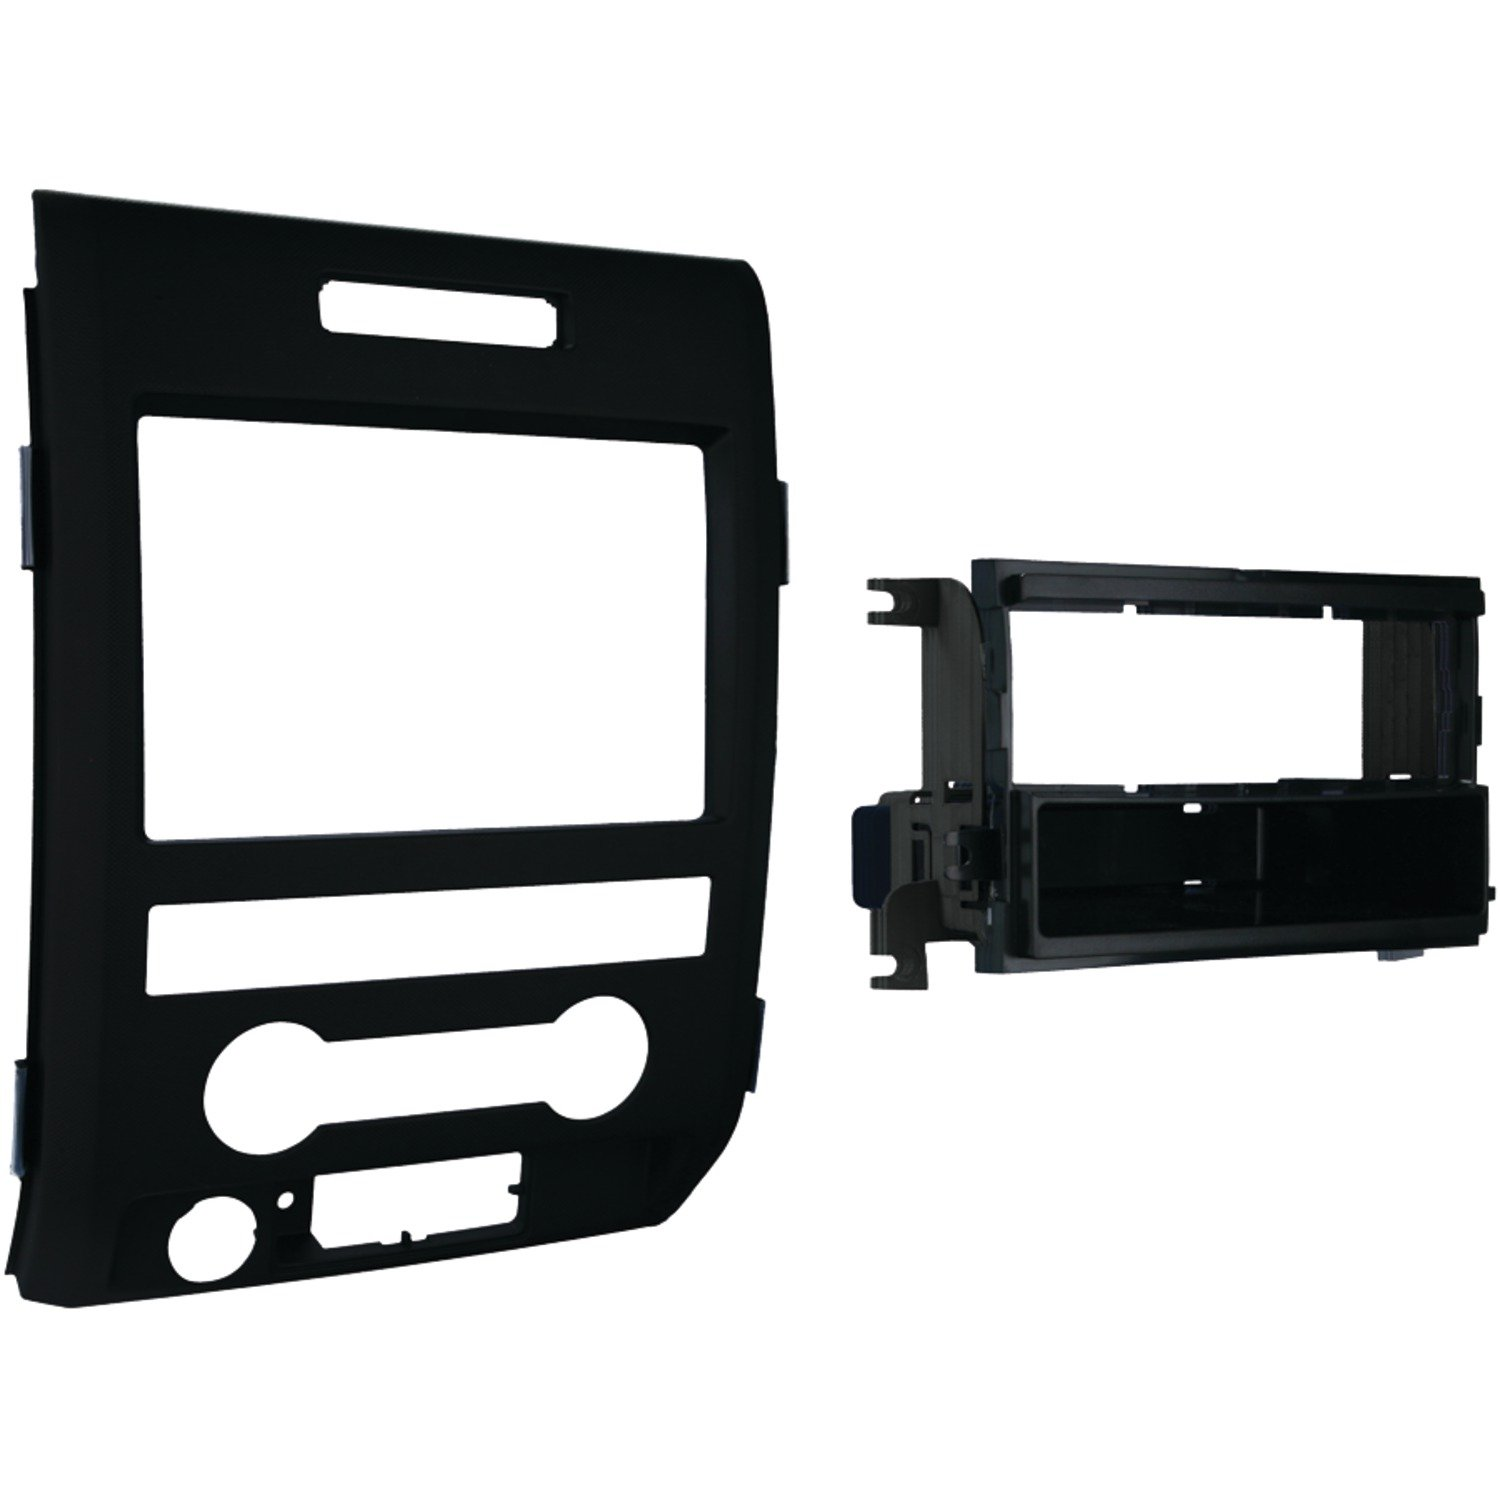 61EJfEsElrL._SL1500_ amazon com metra 99 5820b single din installation dash kit for Dash Kit for F150 at nearapp.co